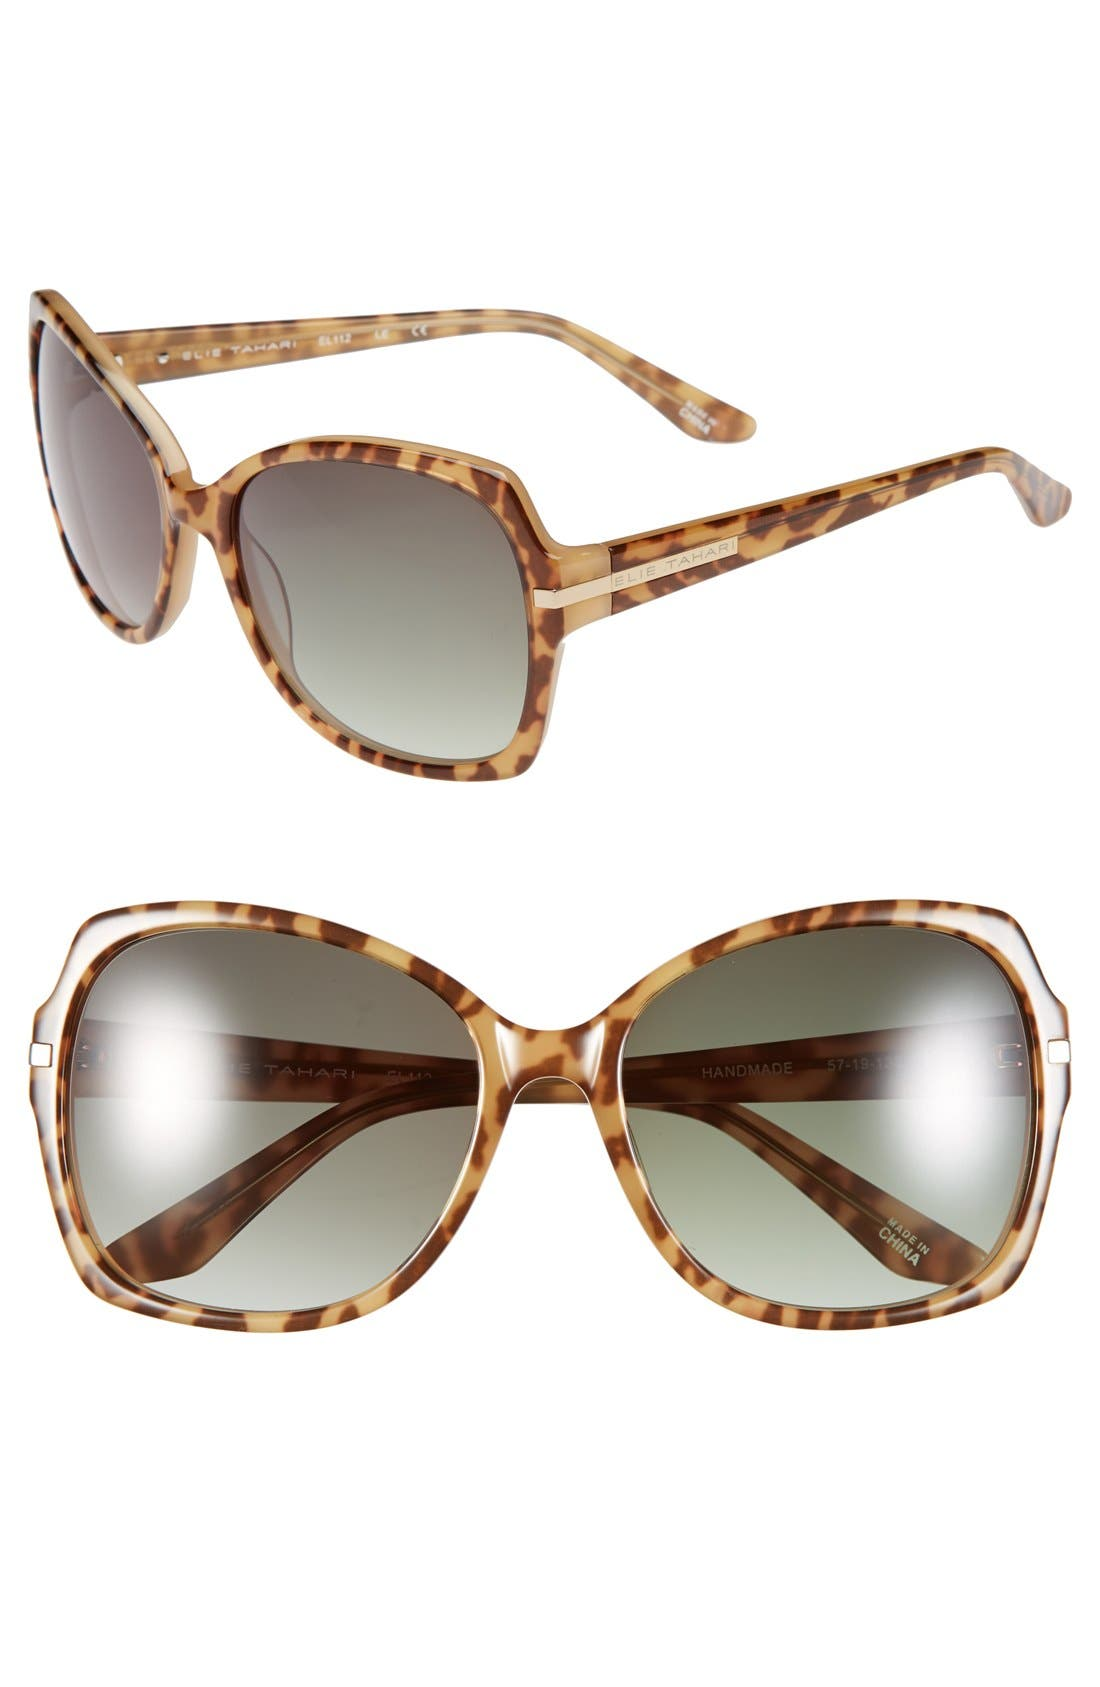 Main Image - Elie Tahari 57mm Butterfly Sunglasses